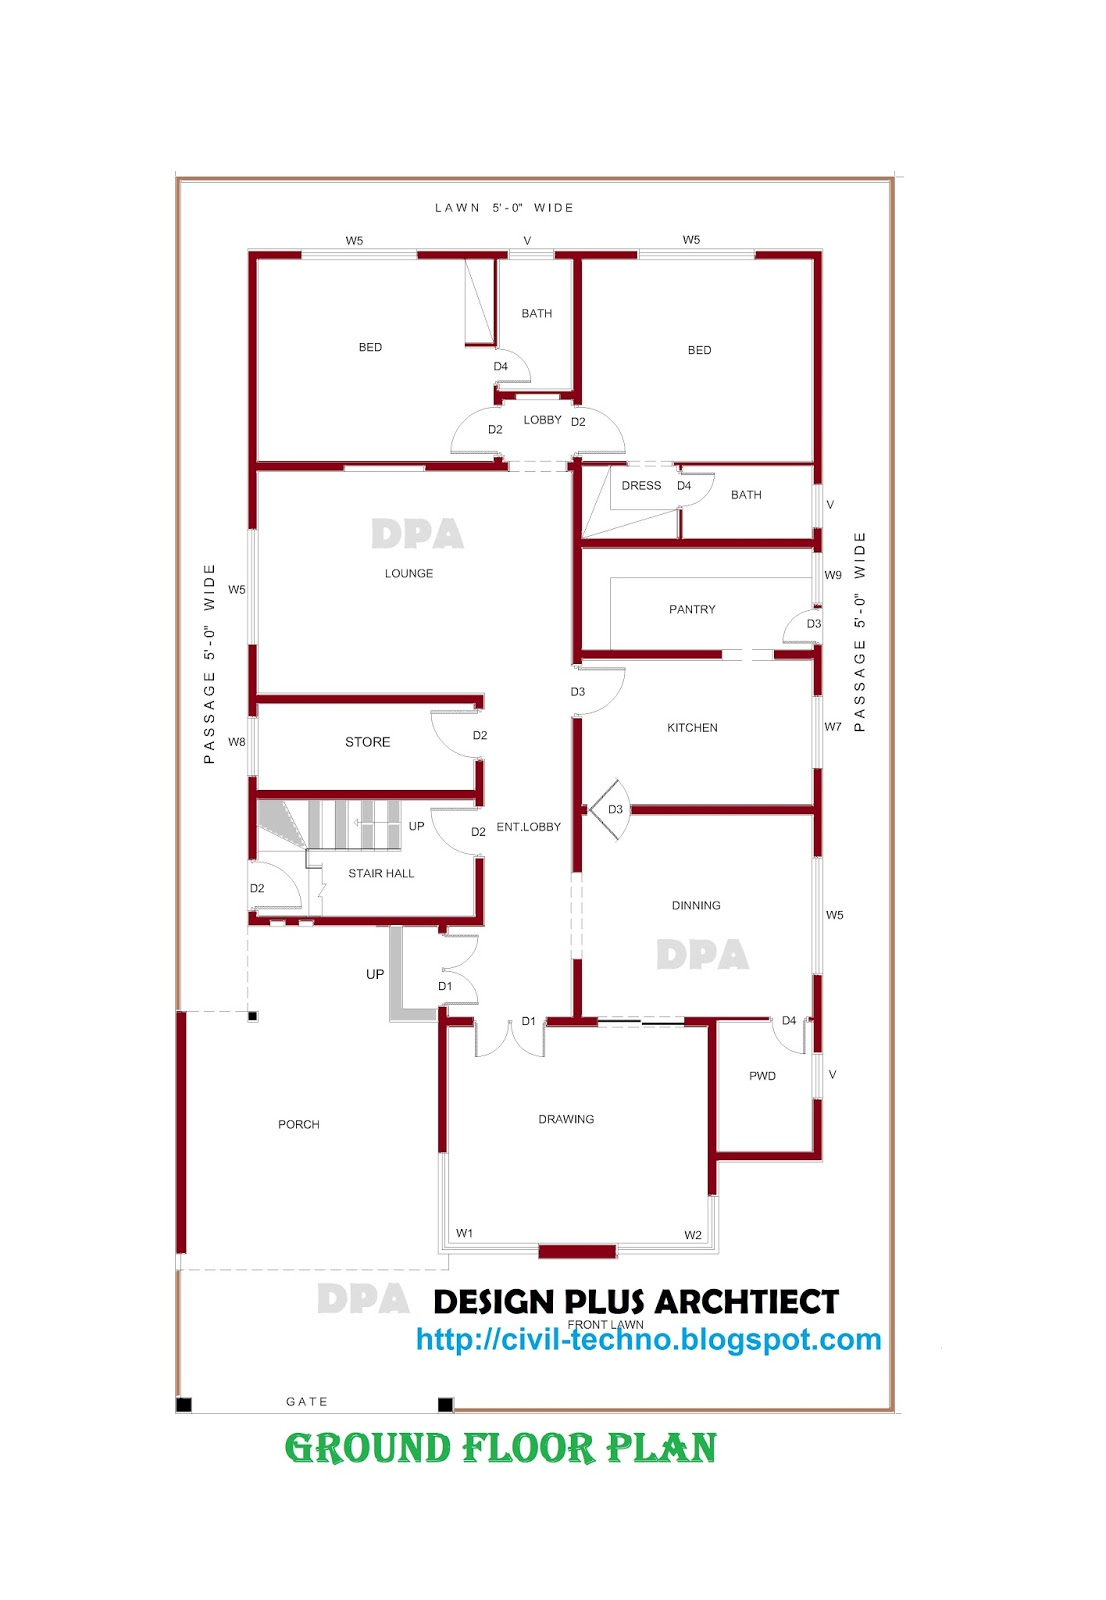 Home plans in pakistan home decor architect designer for House drawing plan layout